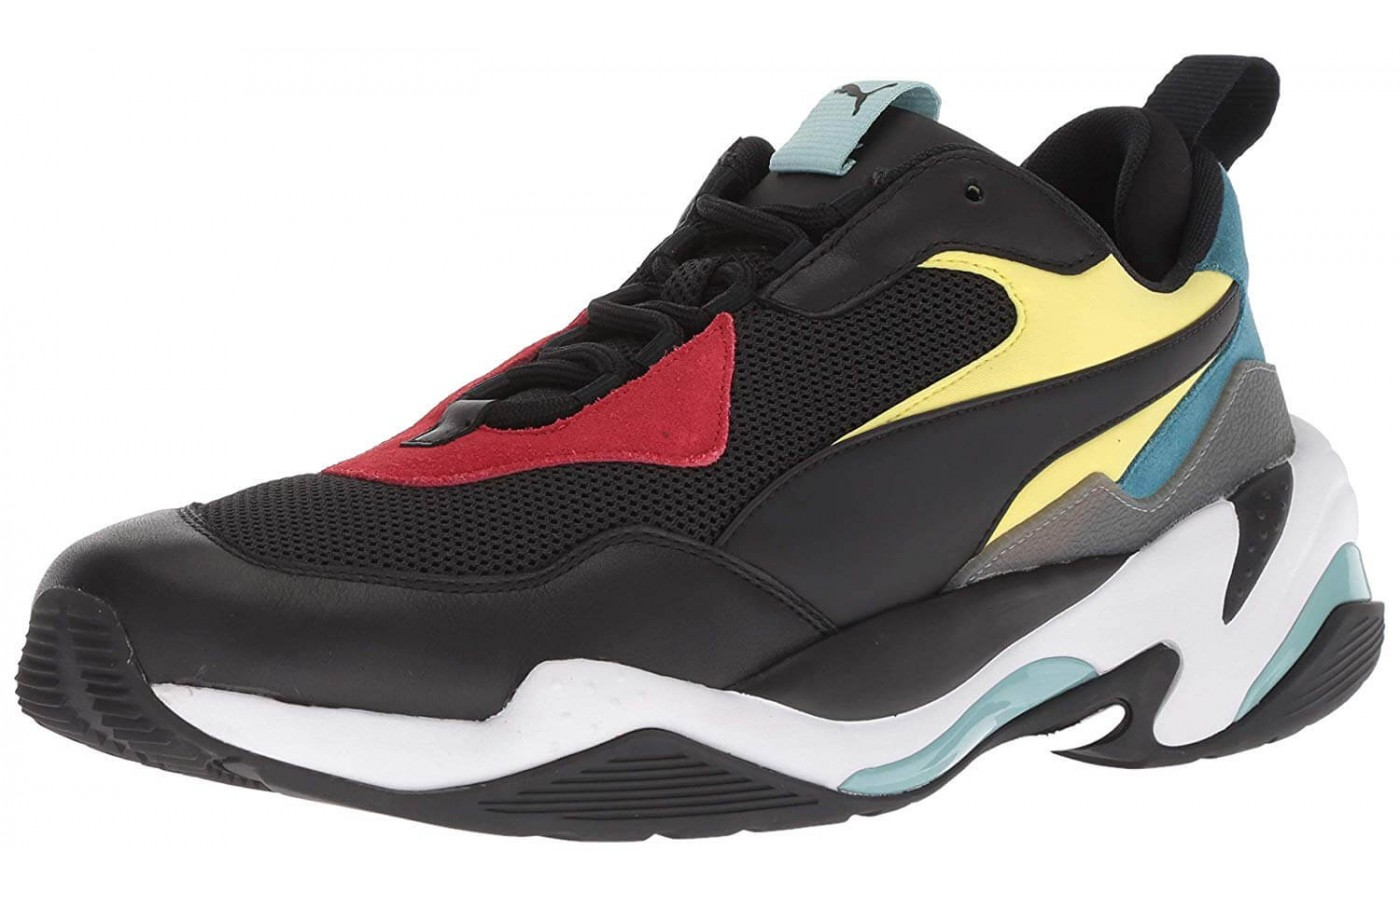 a0dc6a868c12 Clean but retro aesthetic of the Puma Thunder Spectra at an angle.